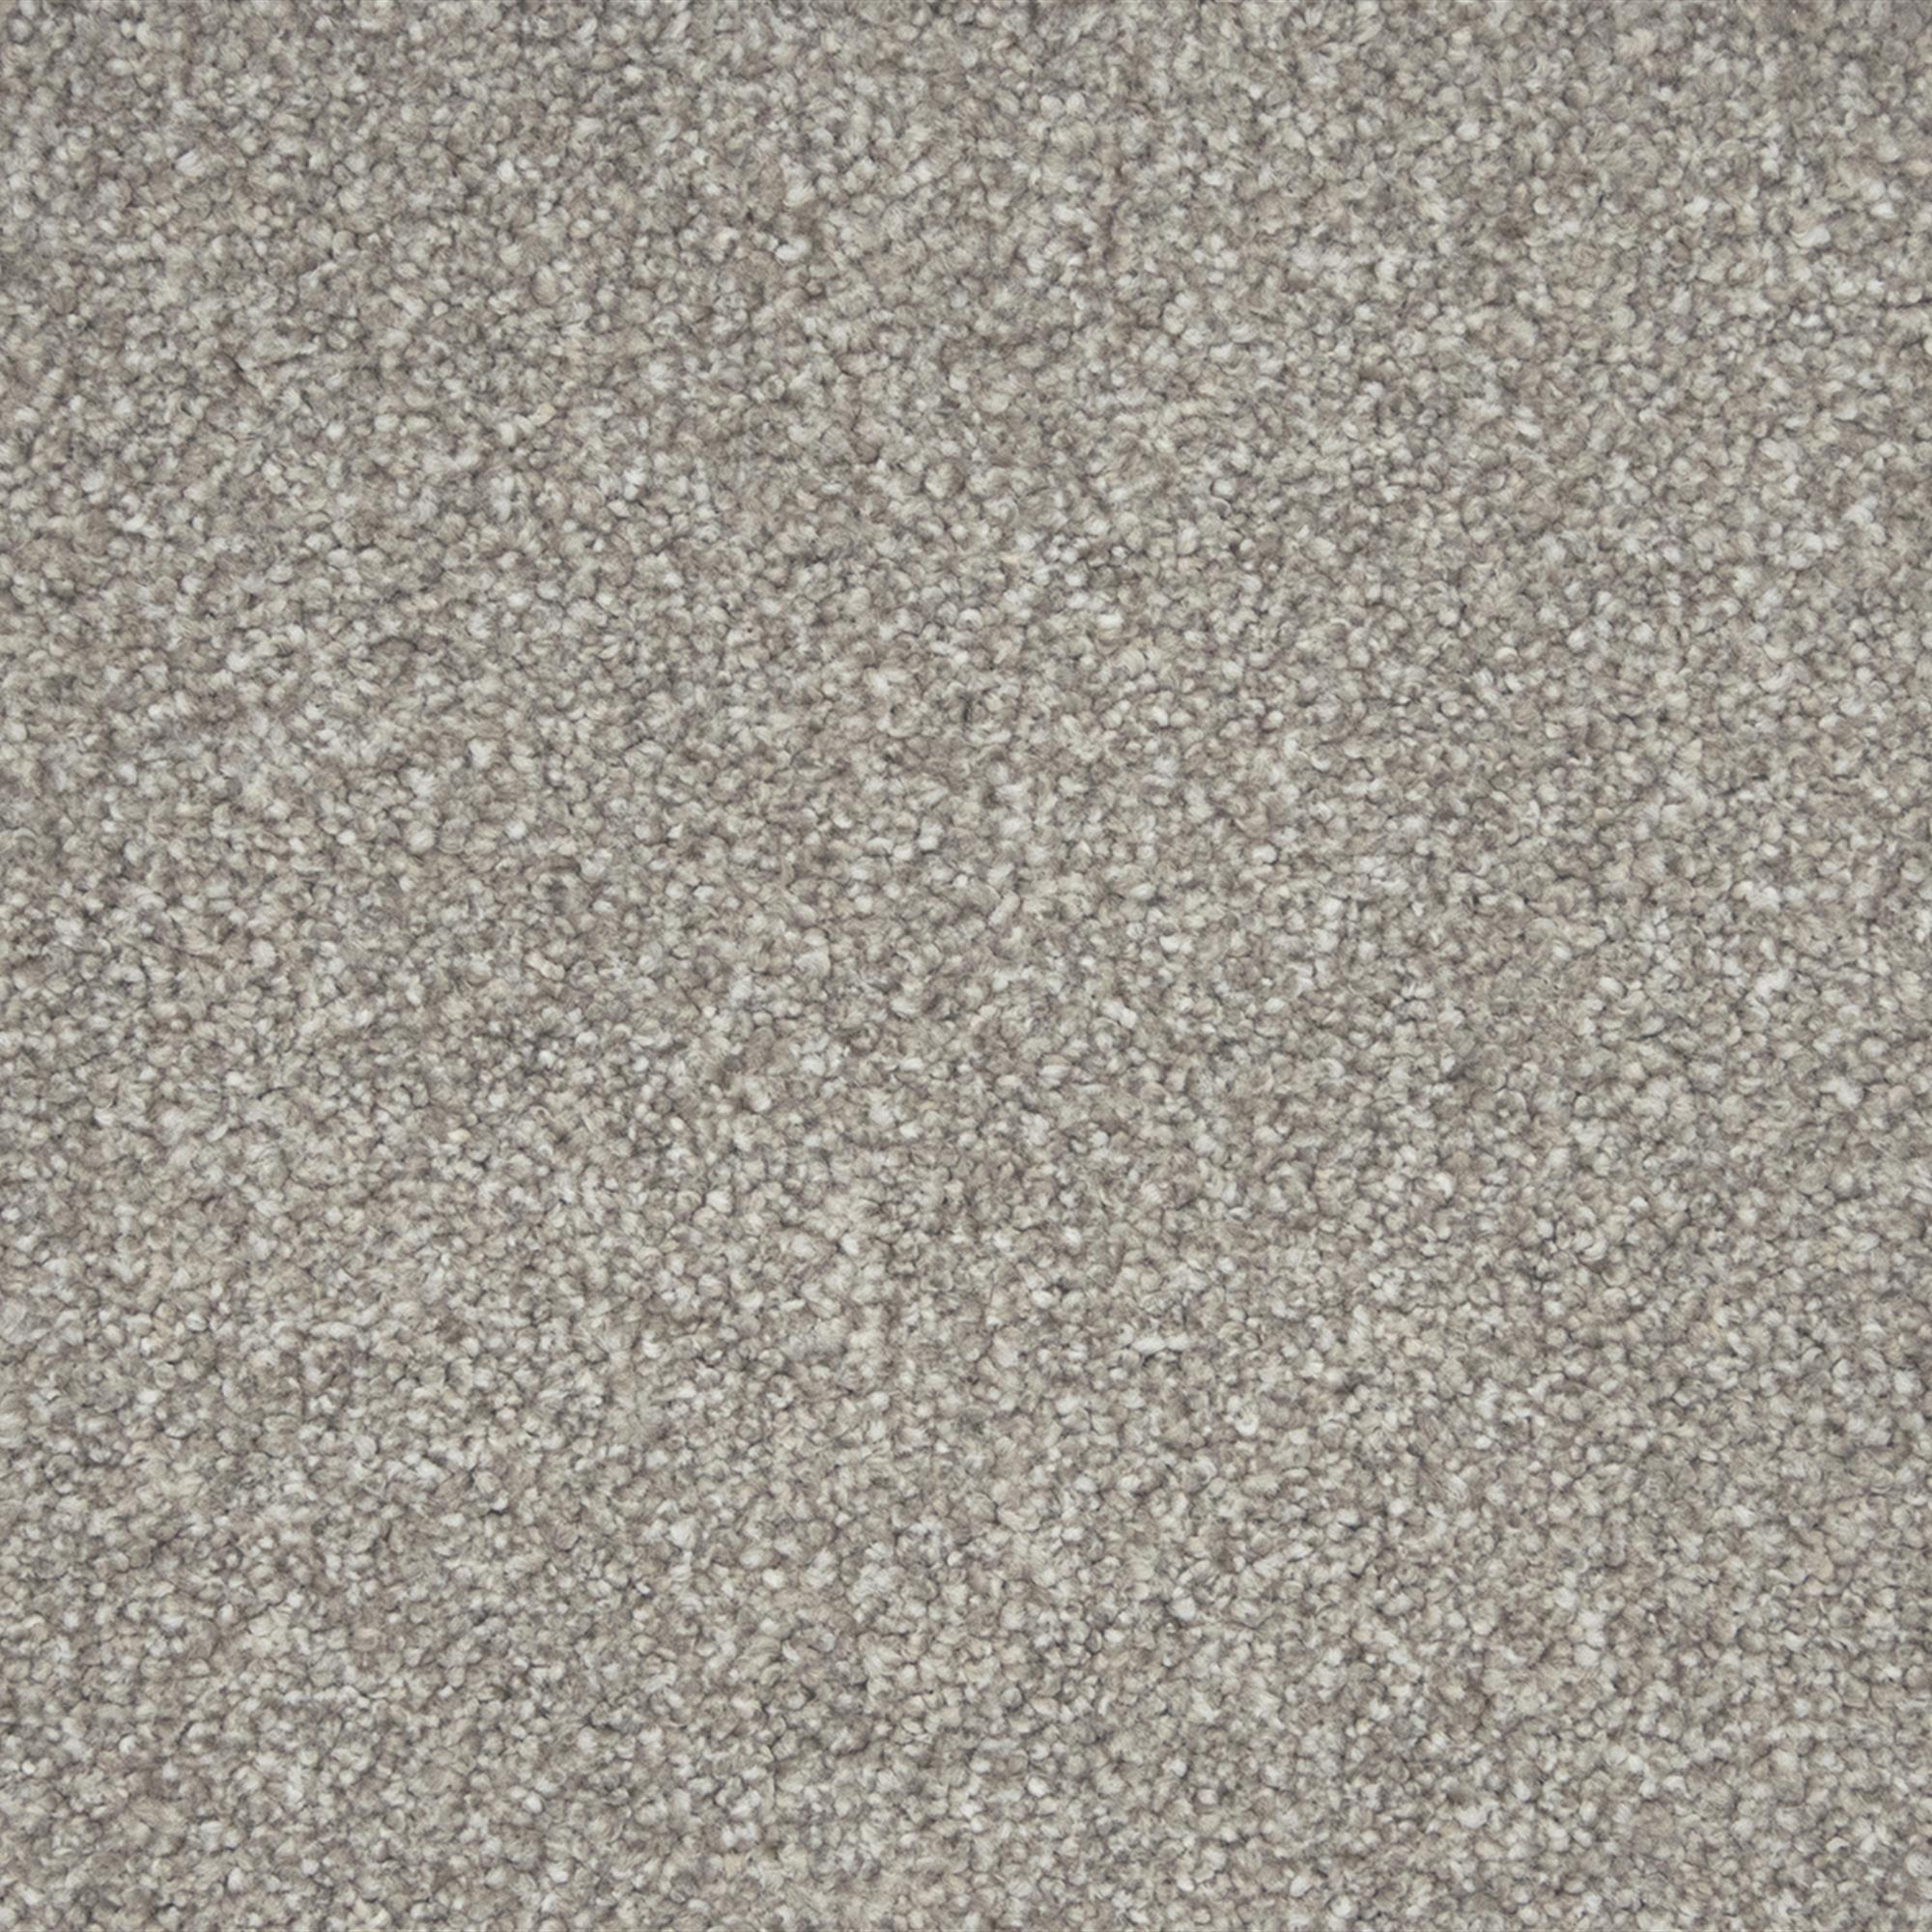 Vivendi Equinox Carpet, 39 Gentle Fawn, swatch